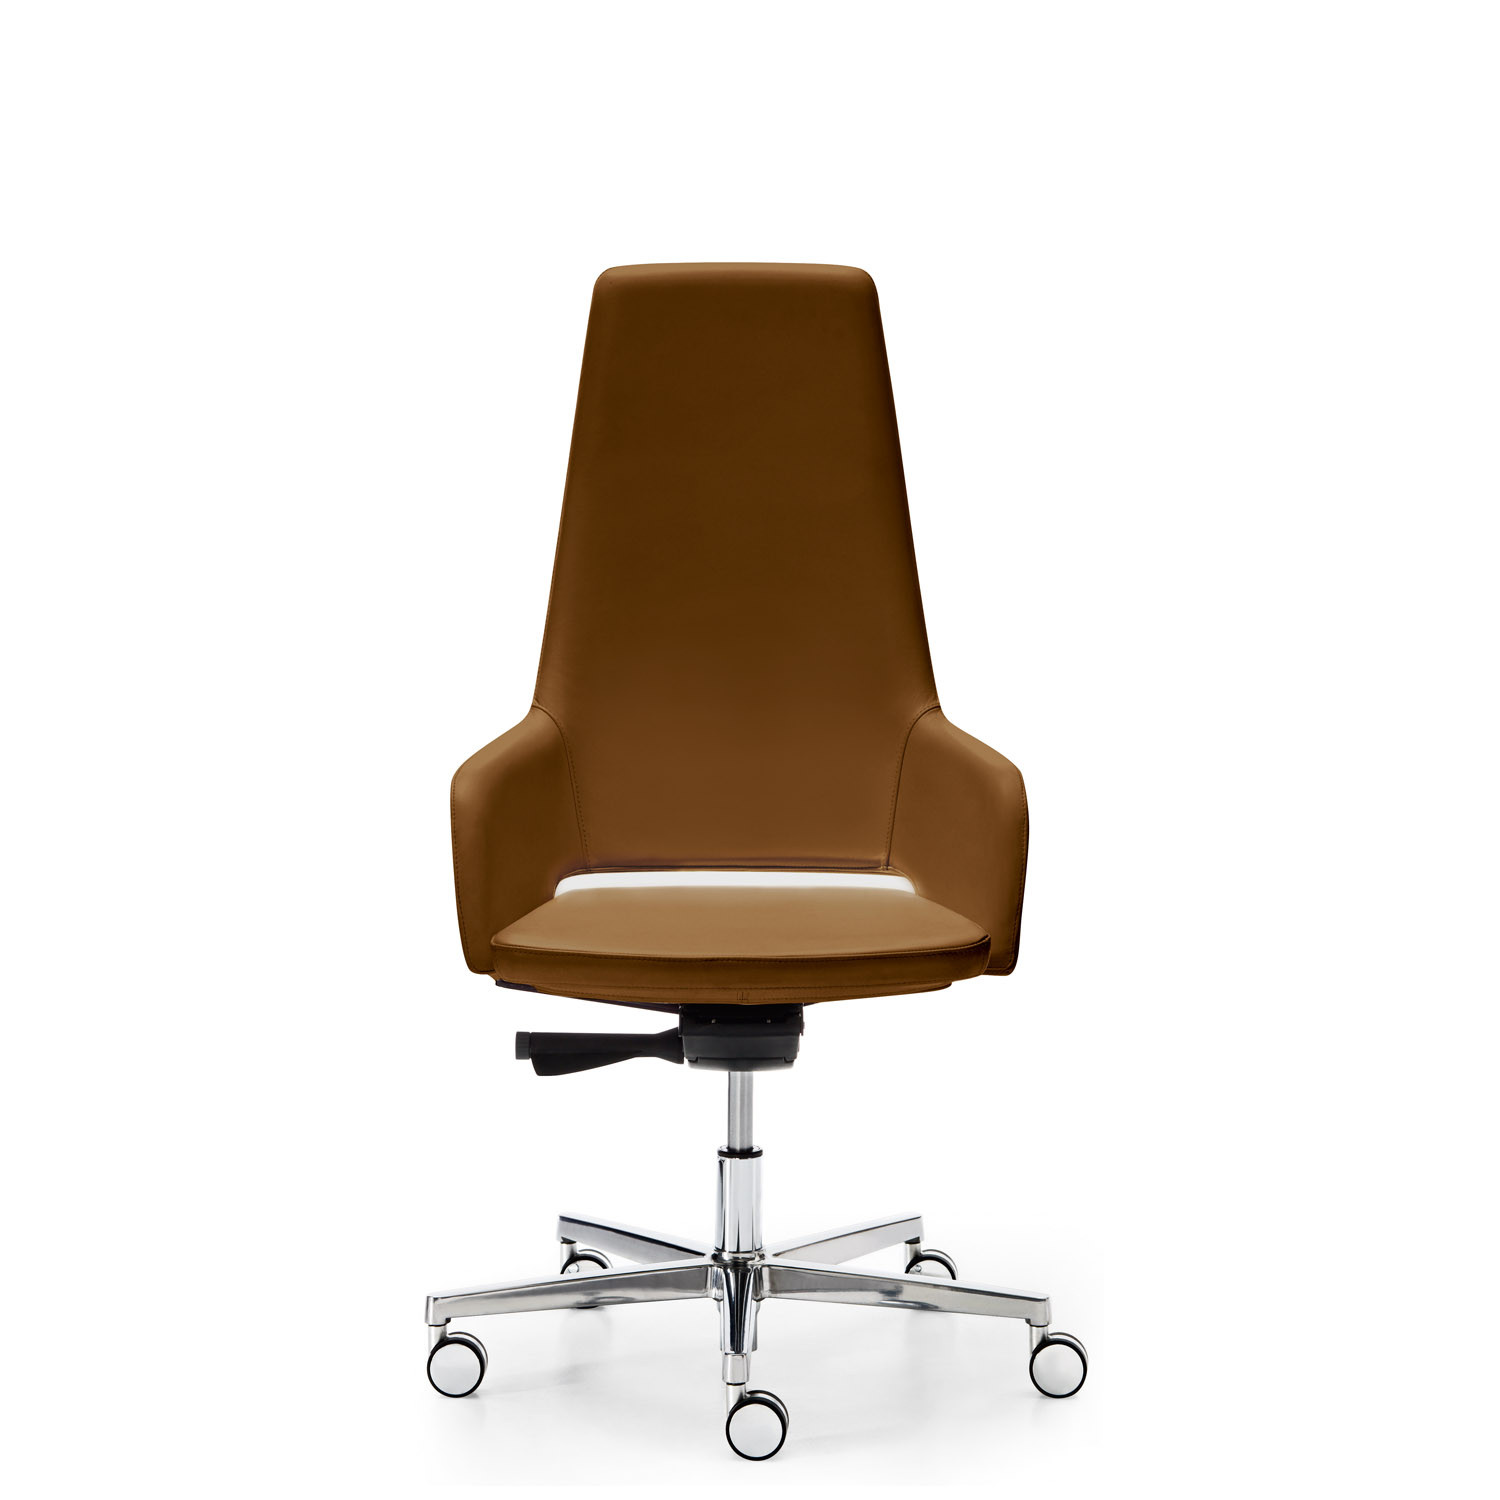 Captain Design Executive Swivel Chair